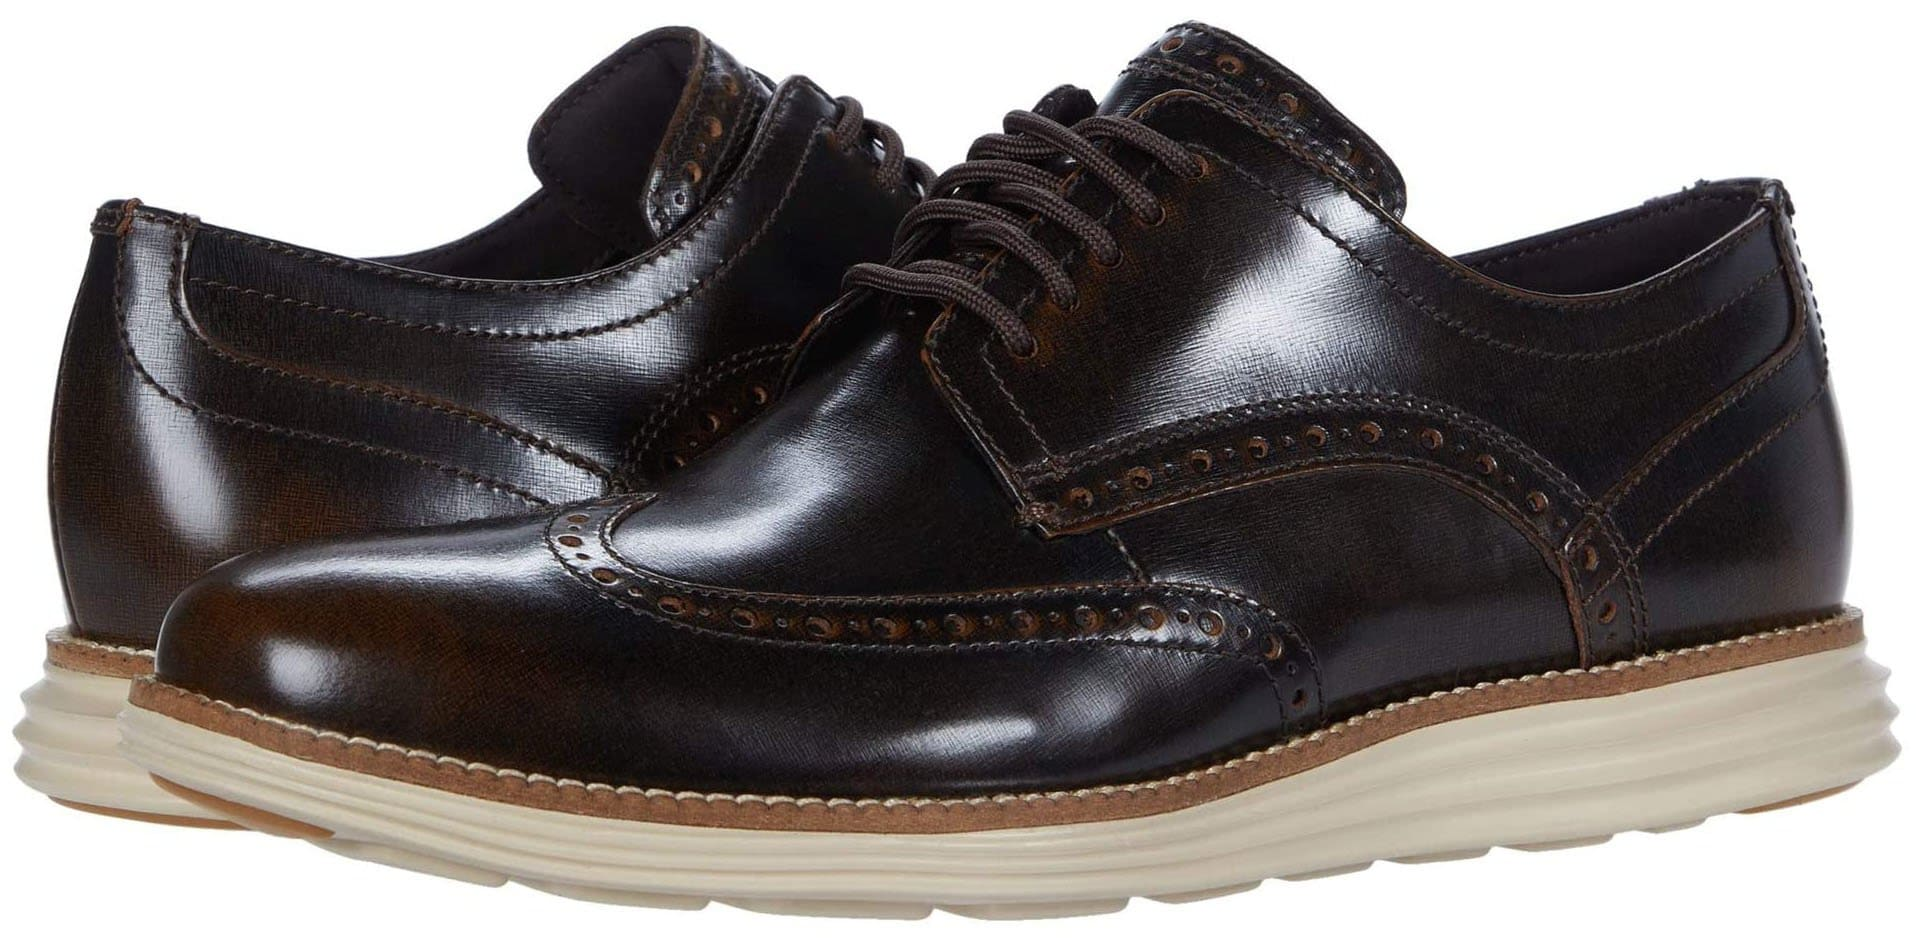 Incorporated with Cole Haan's Grand.OS energy foam for an incredibly comfortable oxford shoe